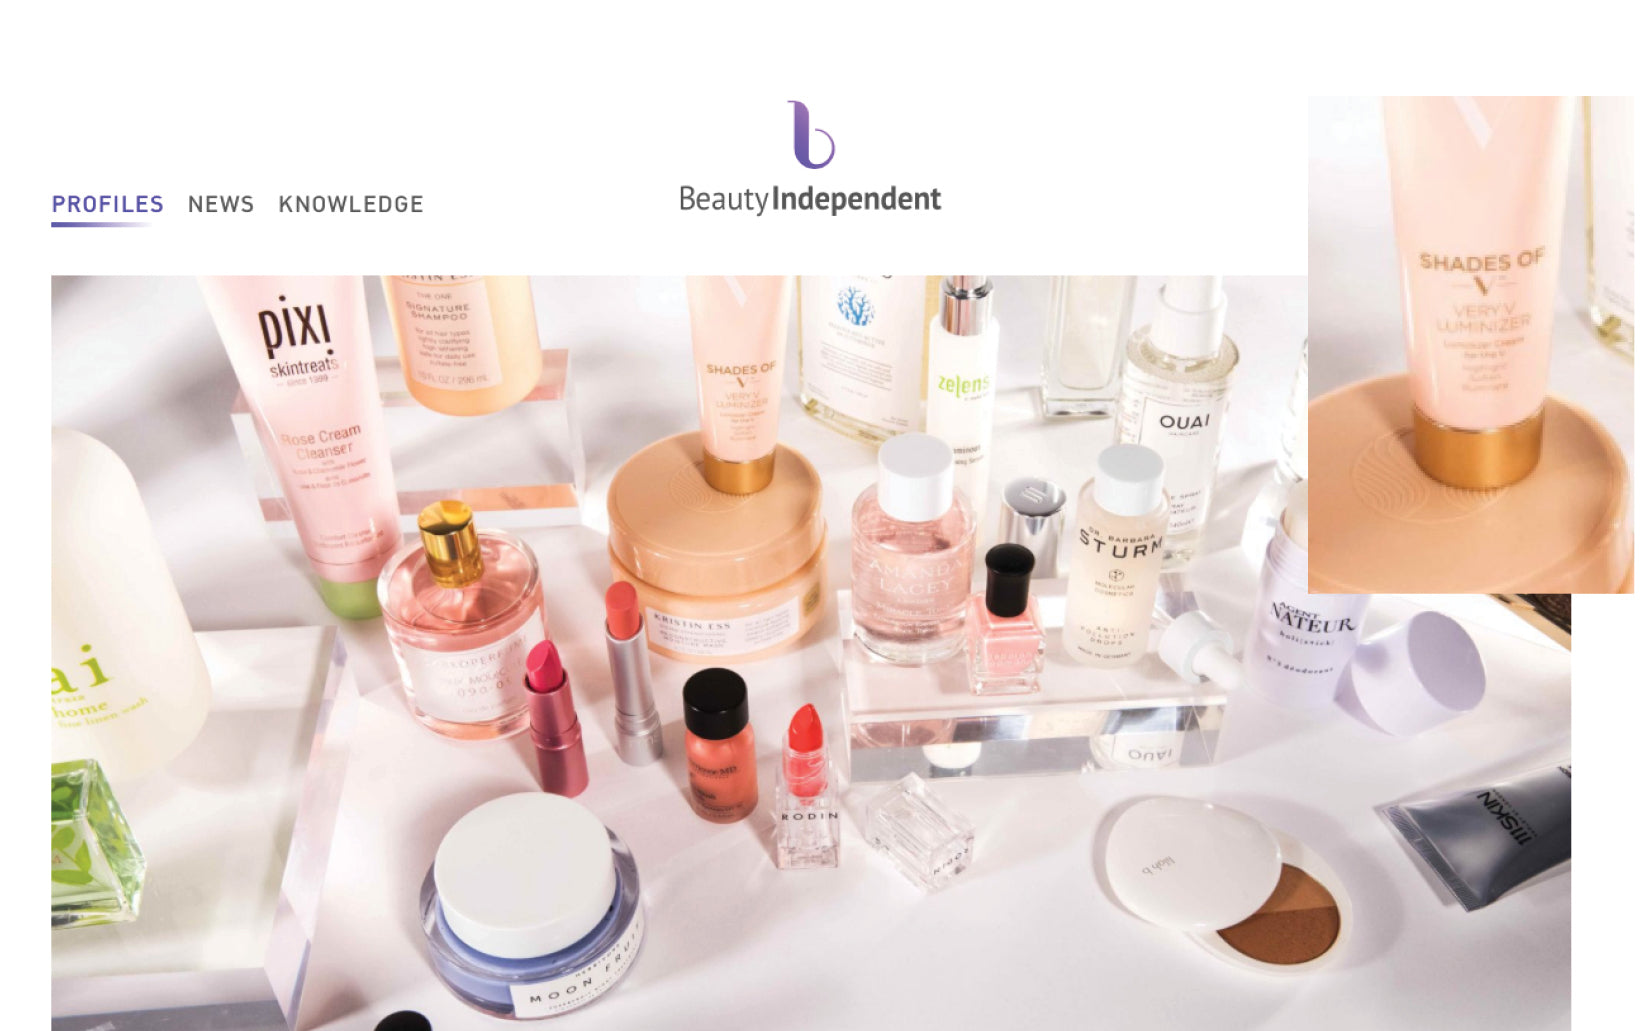 Niche Beauty Introduces German E-Commerce Customers To Indie Beauty Brands